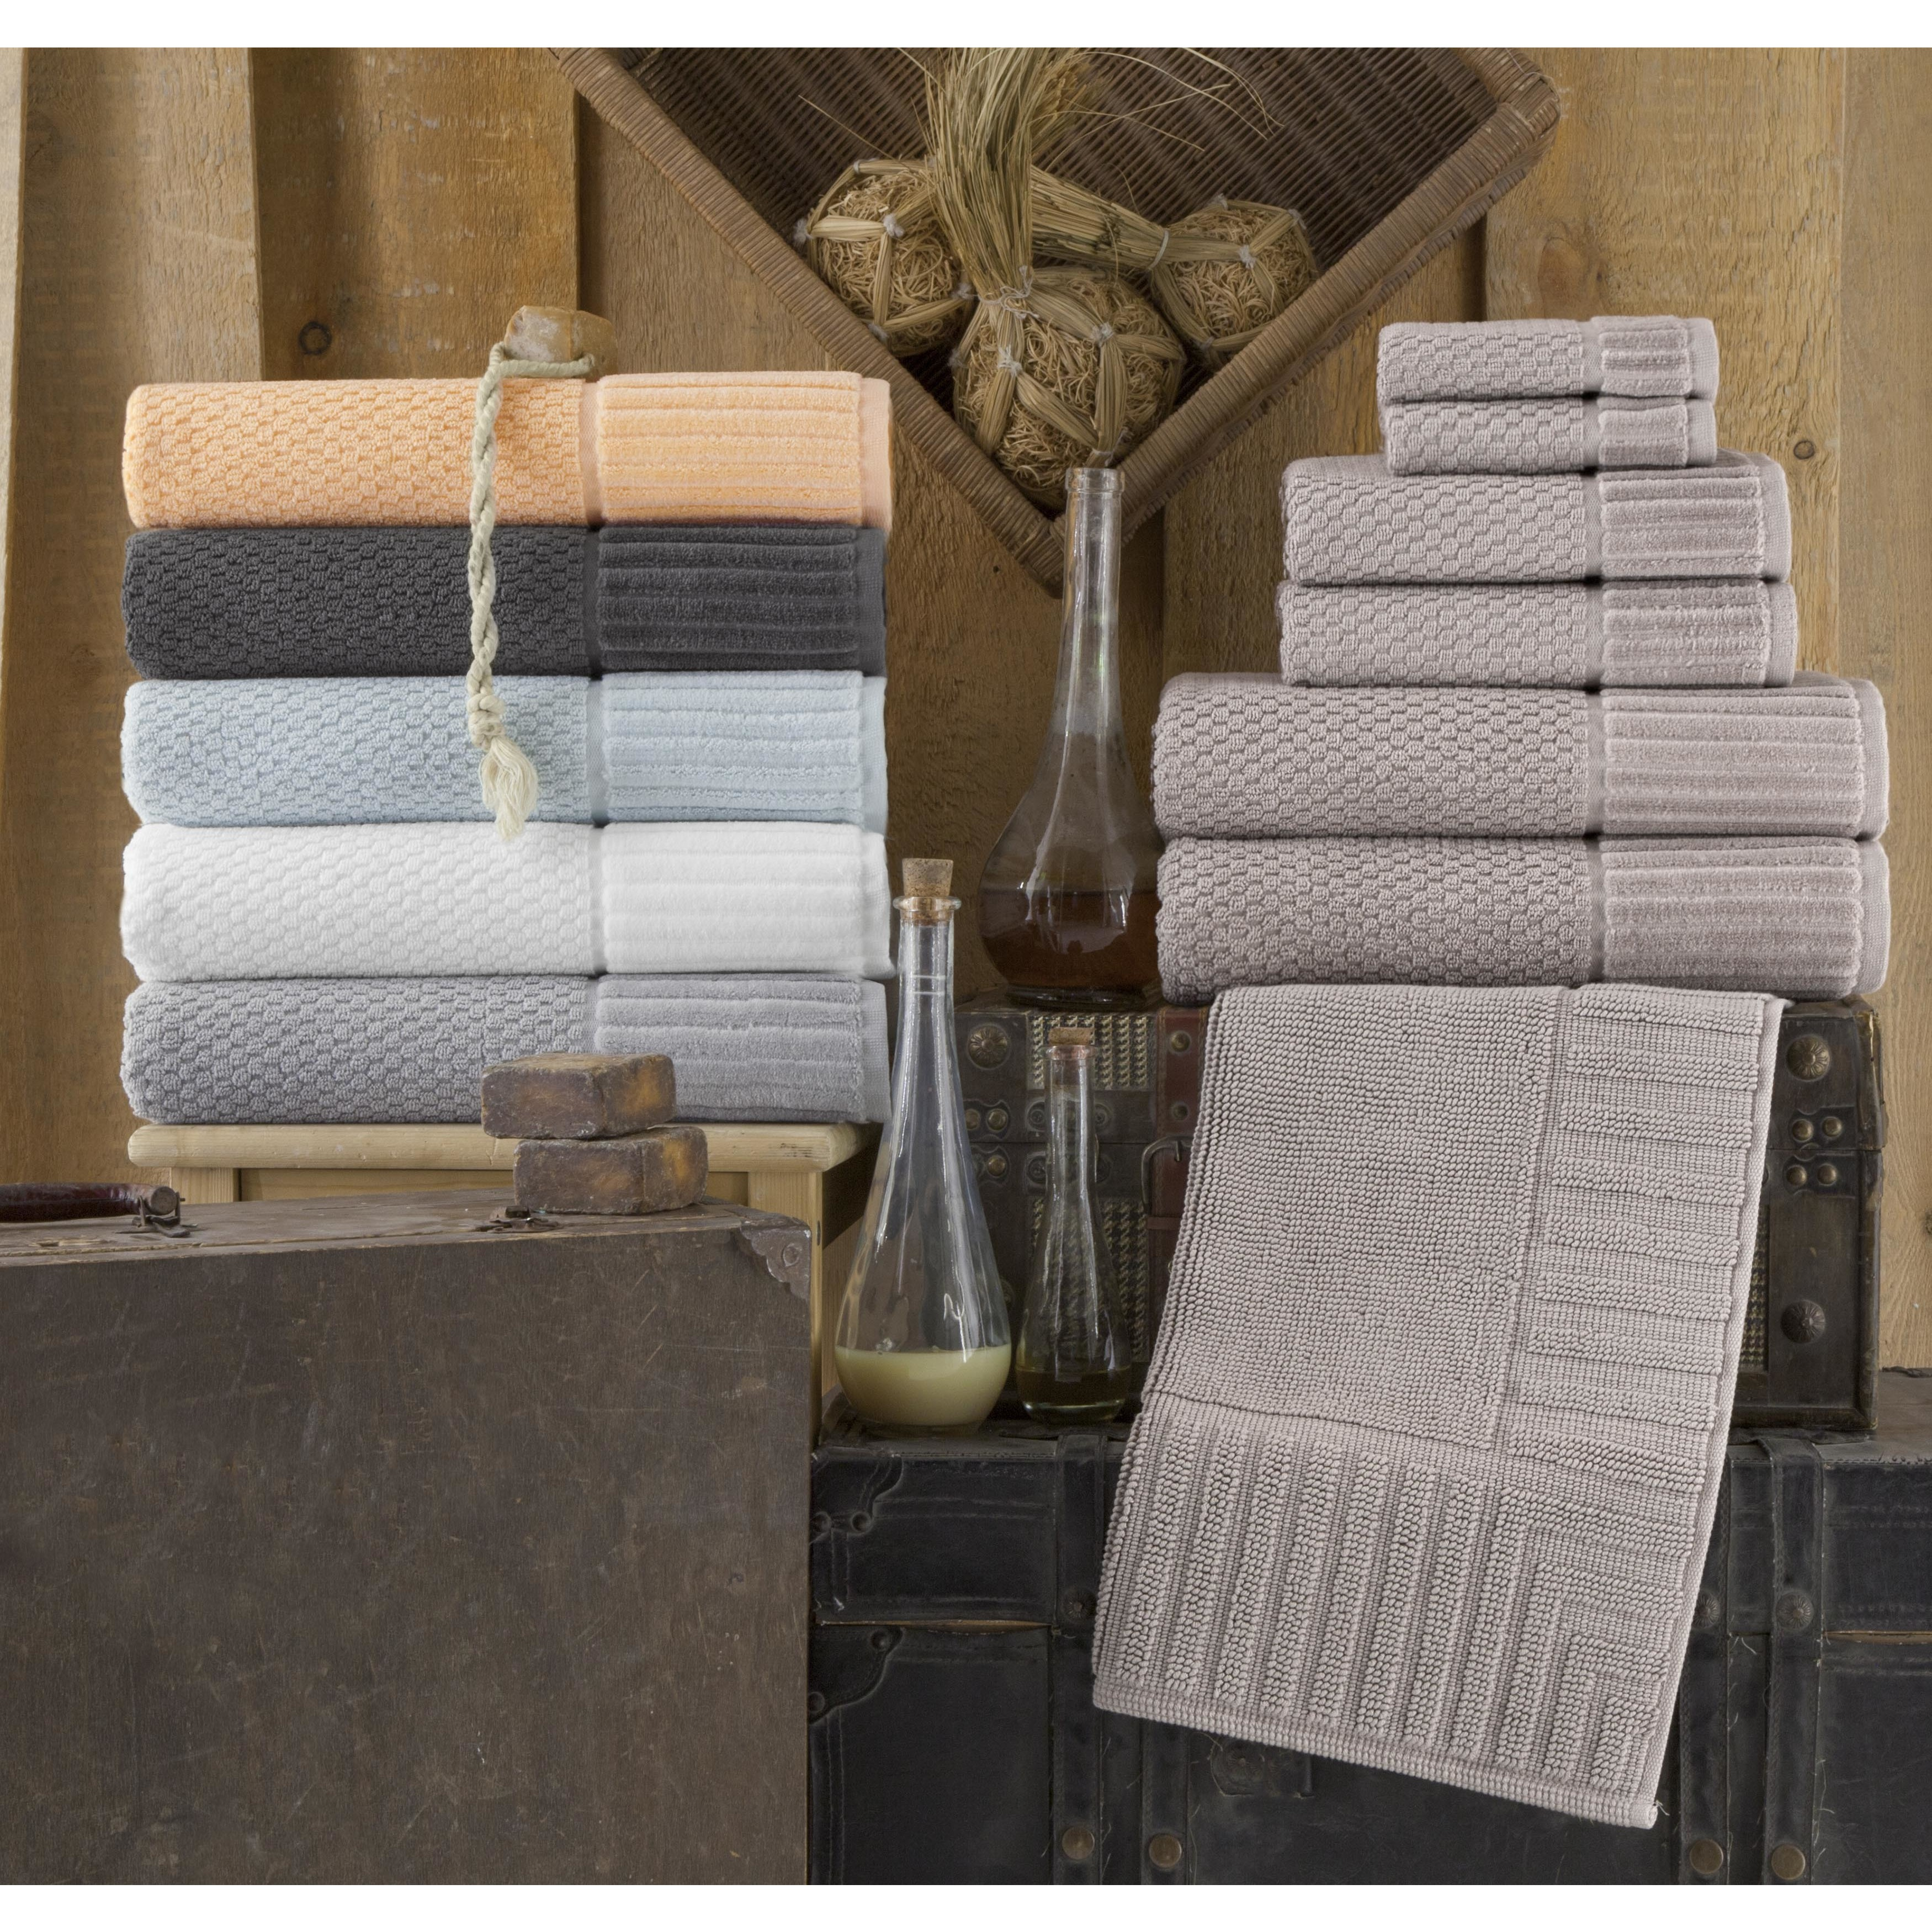 thumbnail 22 - The-Gray-Barn-Scharbauer-Bath-Towels-Set-of-2